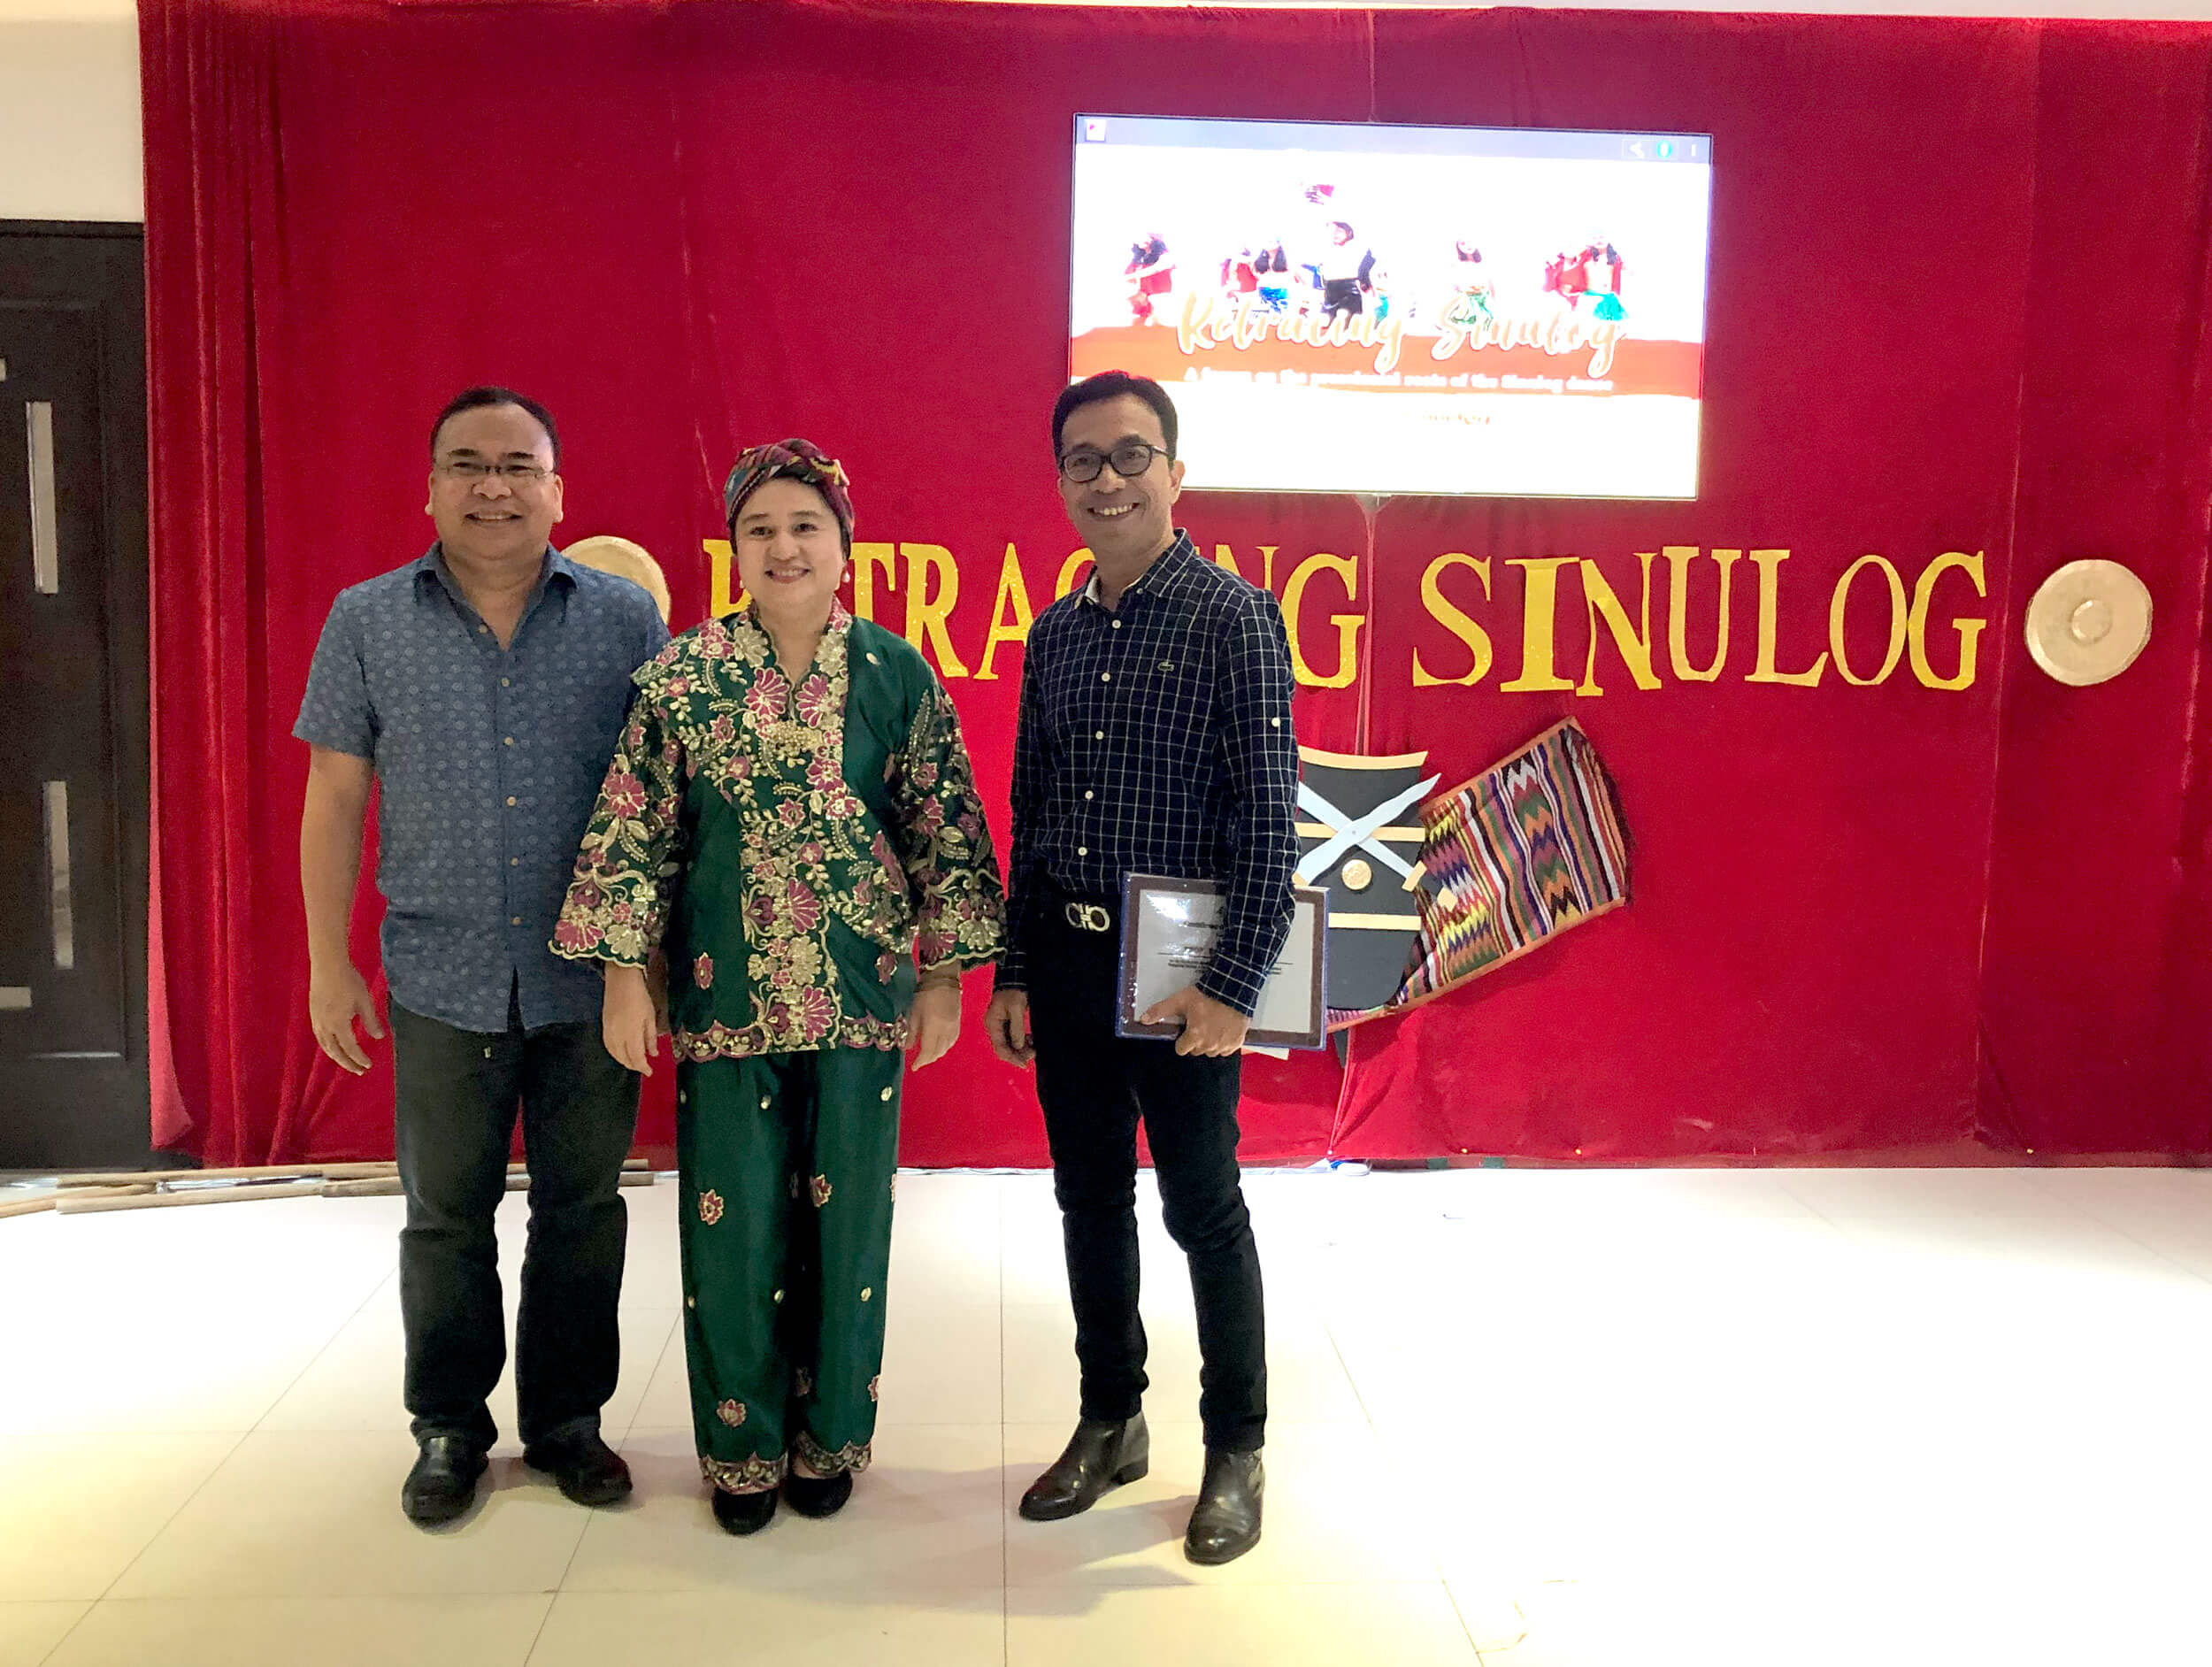 TRACING ROOTS OF SINULOG. (From left) Professor Jose Jose Eleazar Bersales, Caridad Guivelondo of Palm Grass Hotel, and Professor Darwin Absari after the forum on Sinulog held at the downtown Cebu City hotel that is known for its strong support of heritage and culture.